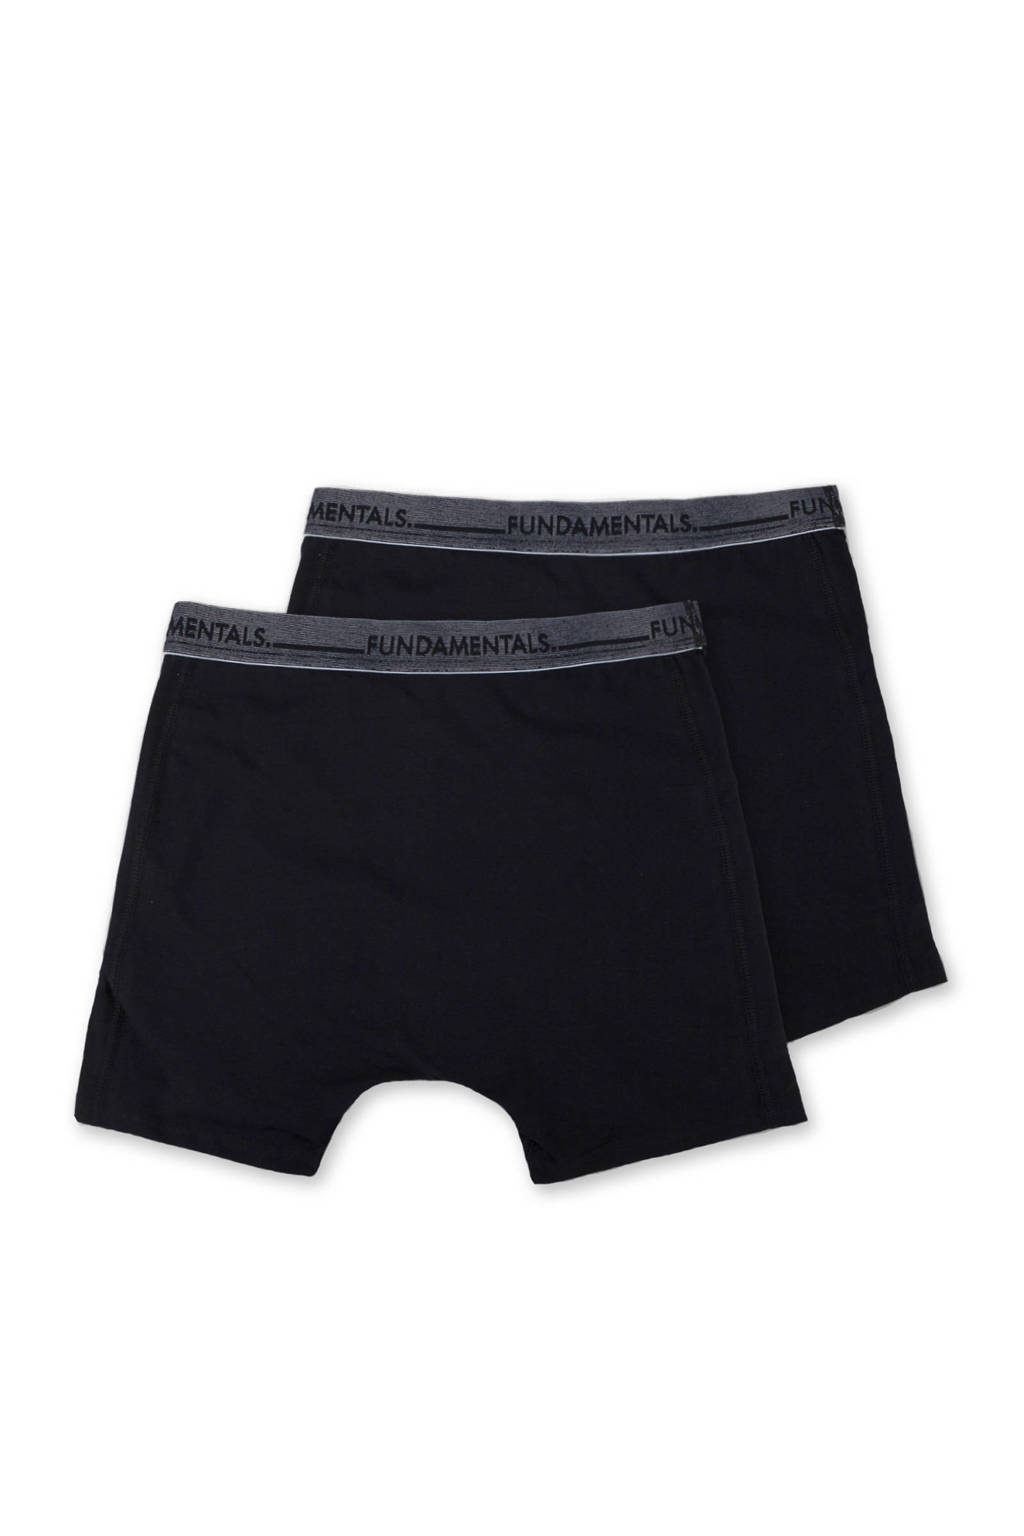 WE Fashion Fundamental boxershort (set van 2), Zwart